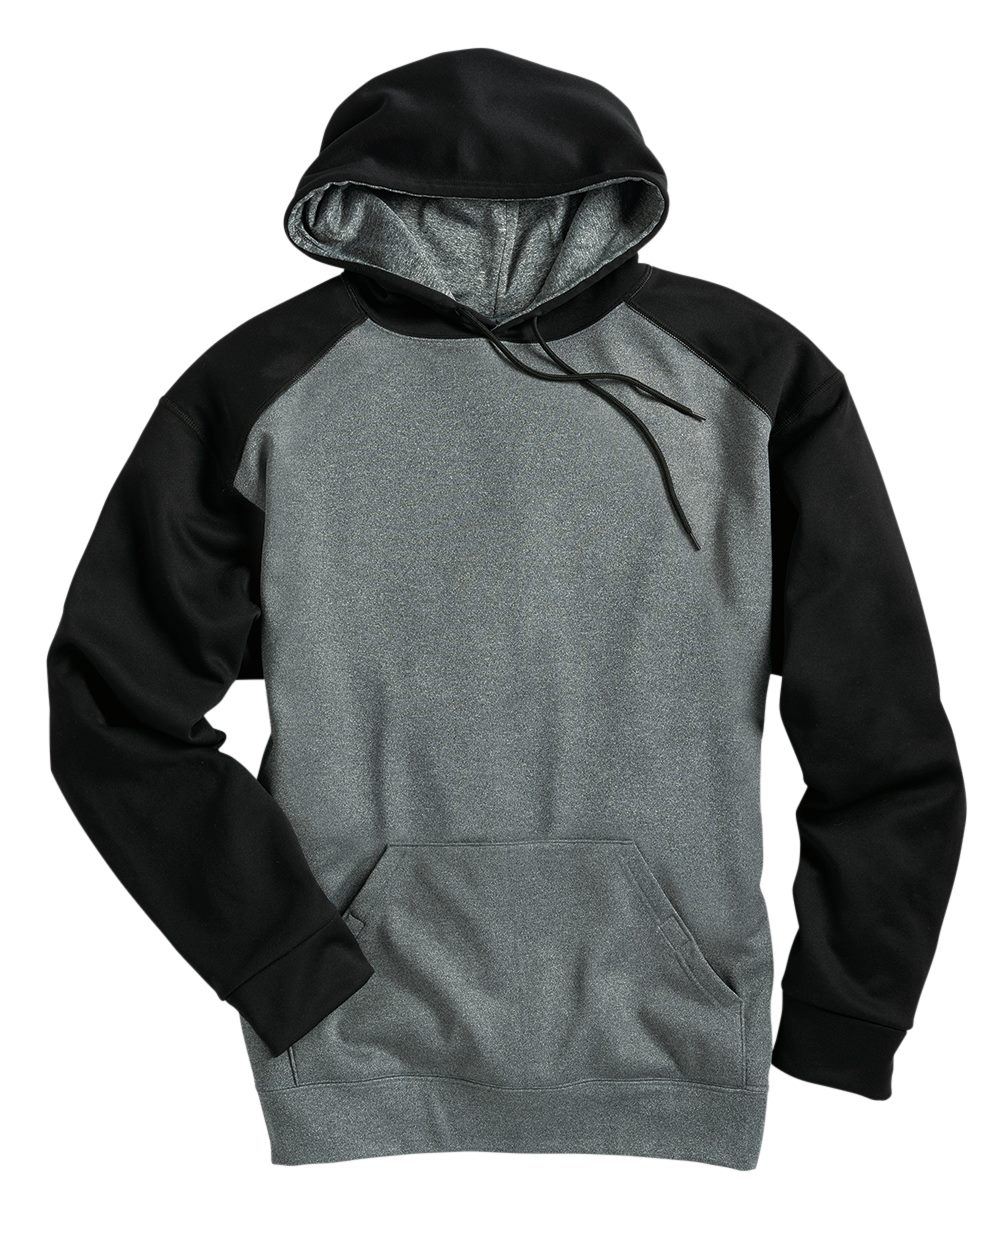 Badger 1468 - Sport Pro Heather Performance Fleece Hooded ...